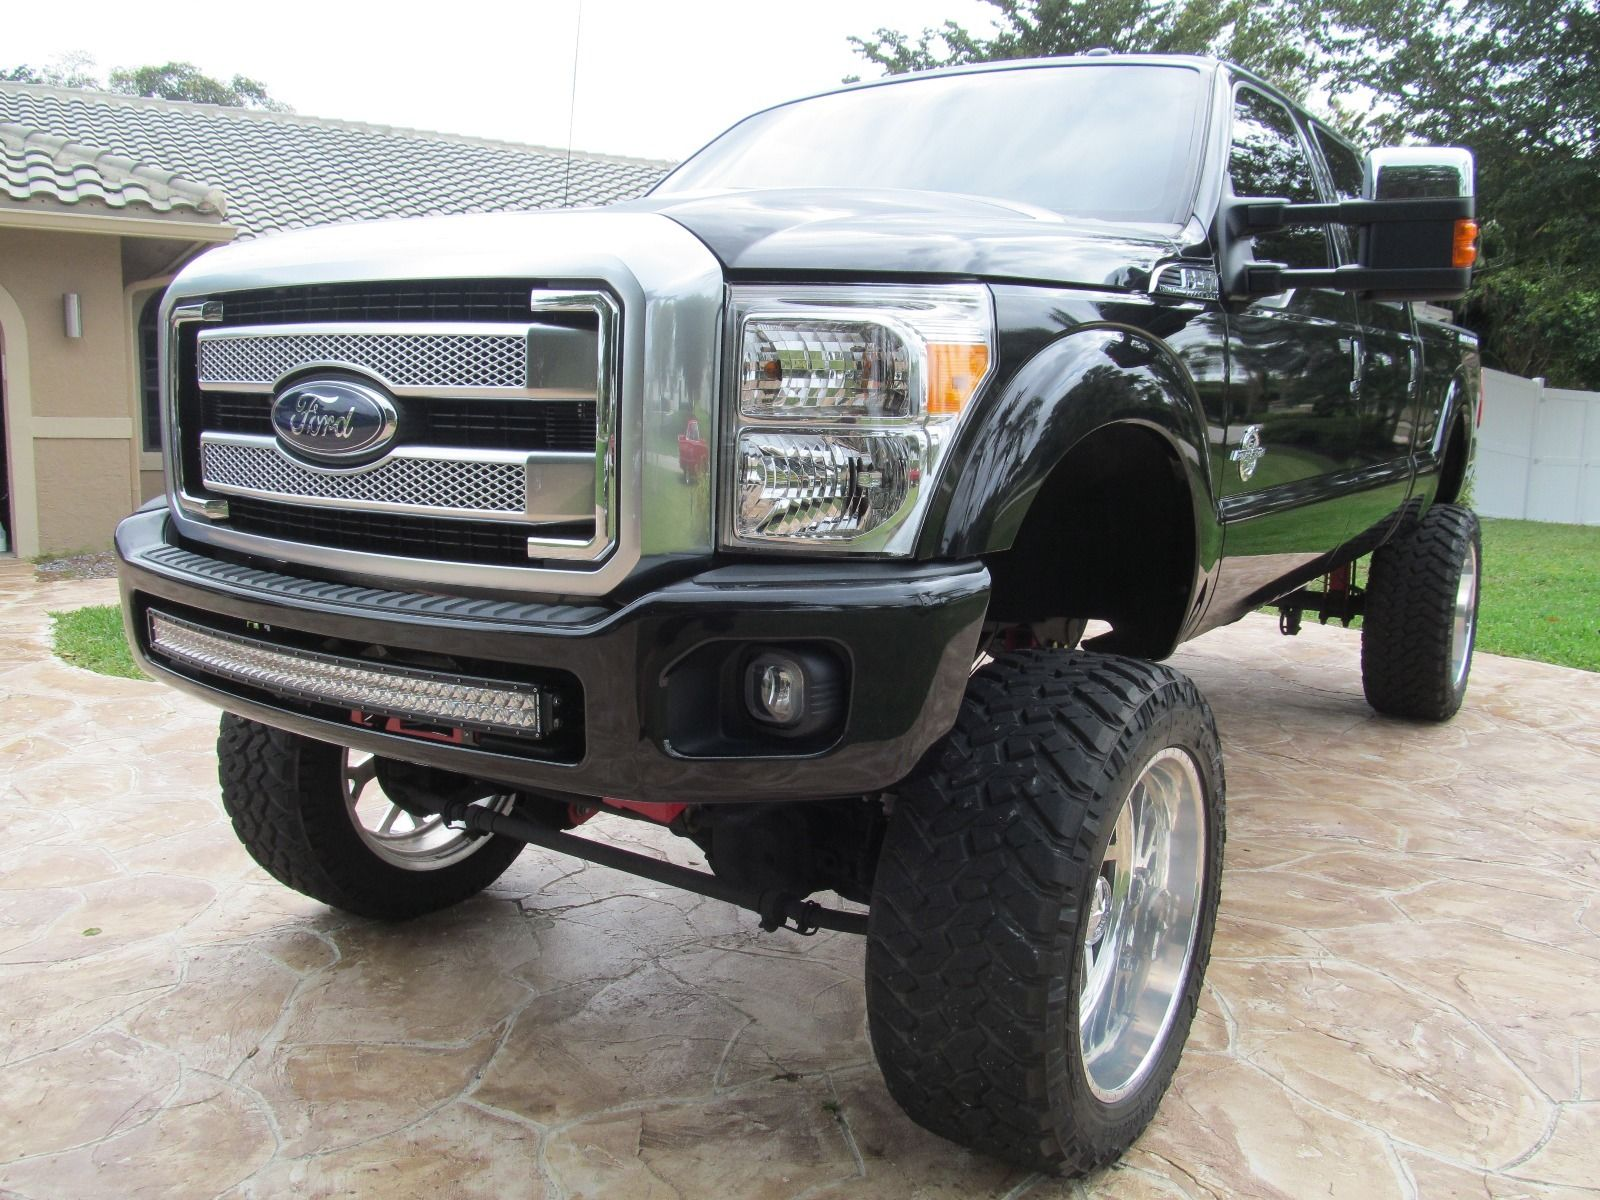 2017 Ford F 250 Platinum Lifted >> Show winner 2015 Ford F 250 PLATINUM monster truck for sale